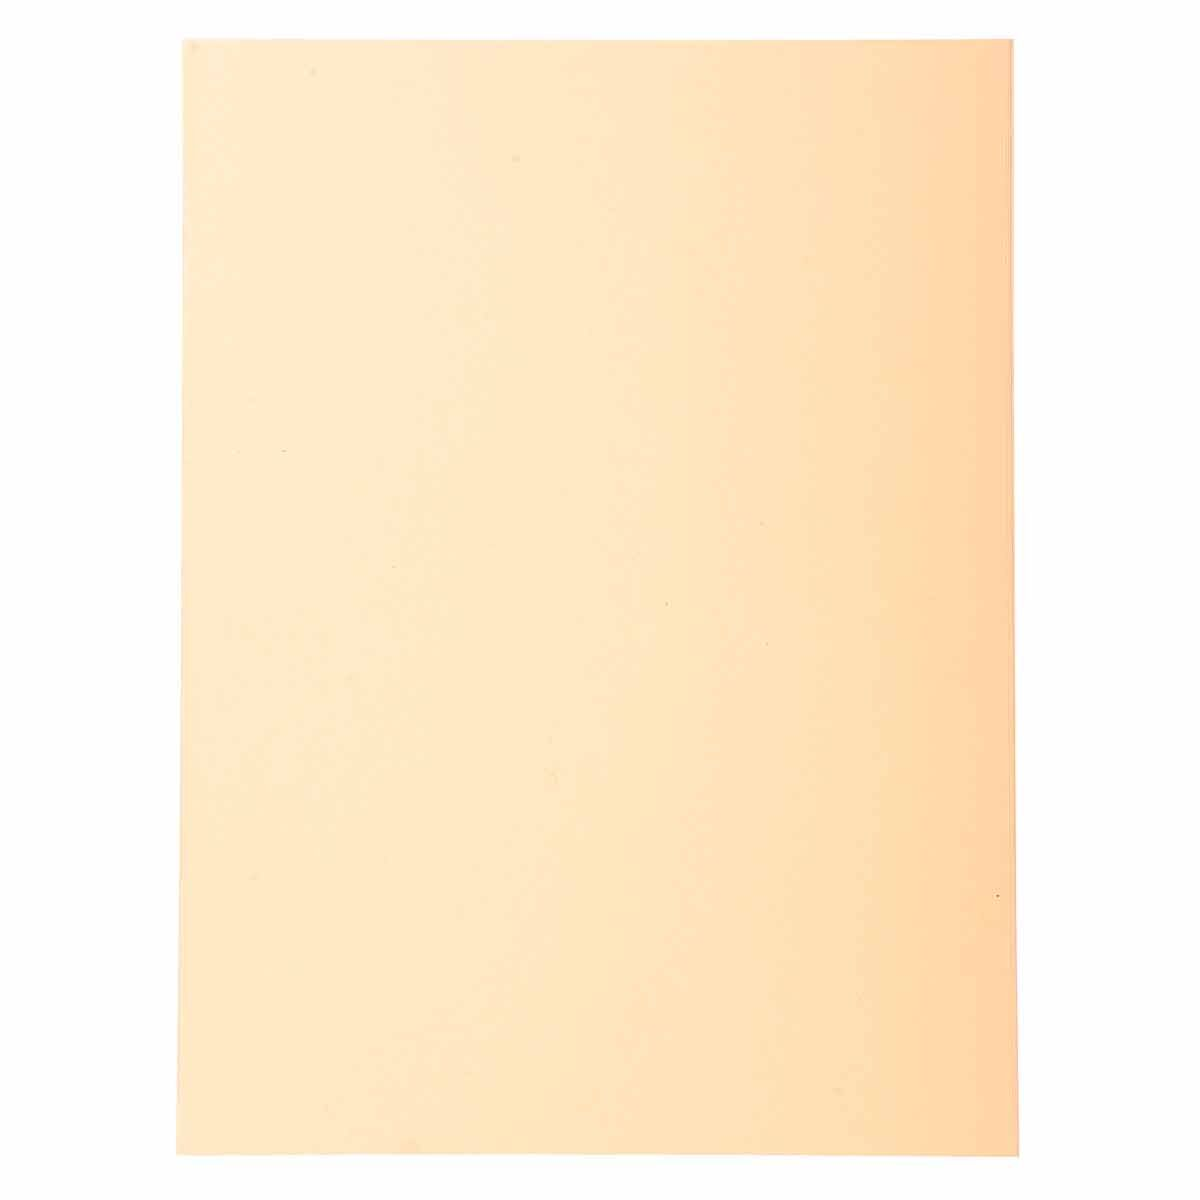 Exacompta Forever Square Cut Folders A4 170gsm 5 Packs of 100